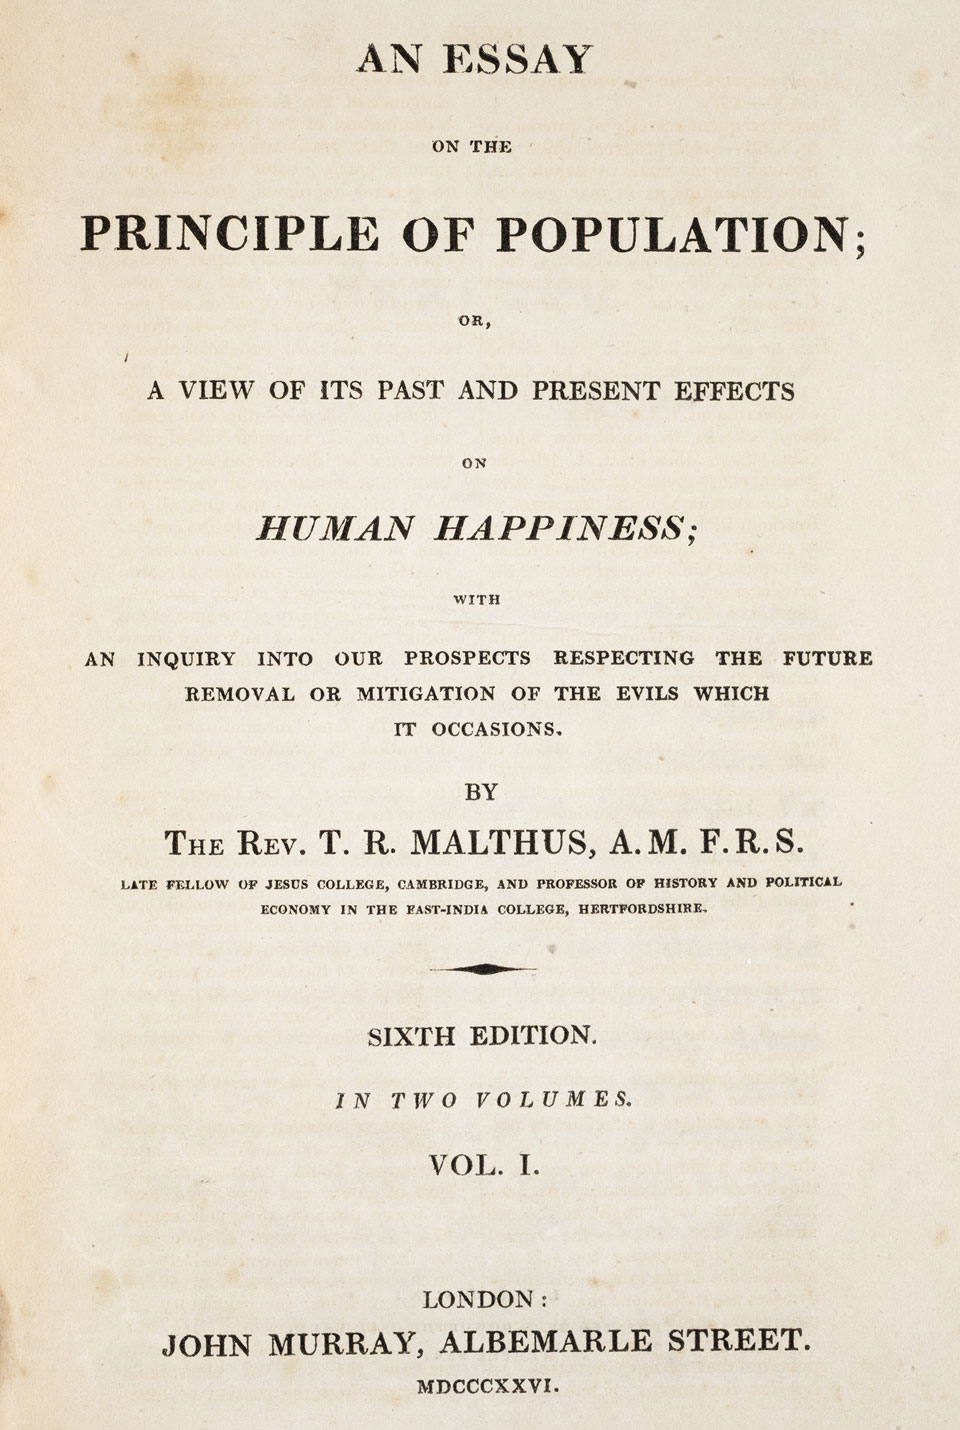 essay on population the grandeur of life a celebration of charles  the grandeur of life a celebration of charles darwin and the titlepage to thomas malthus an